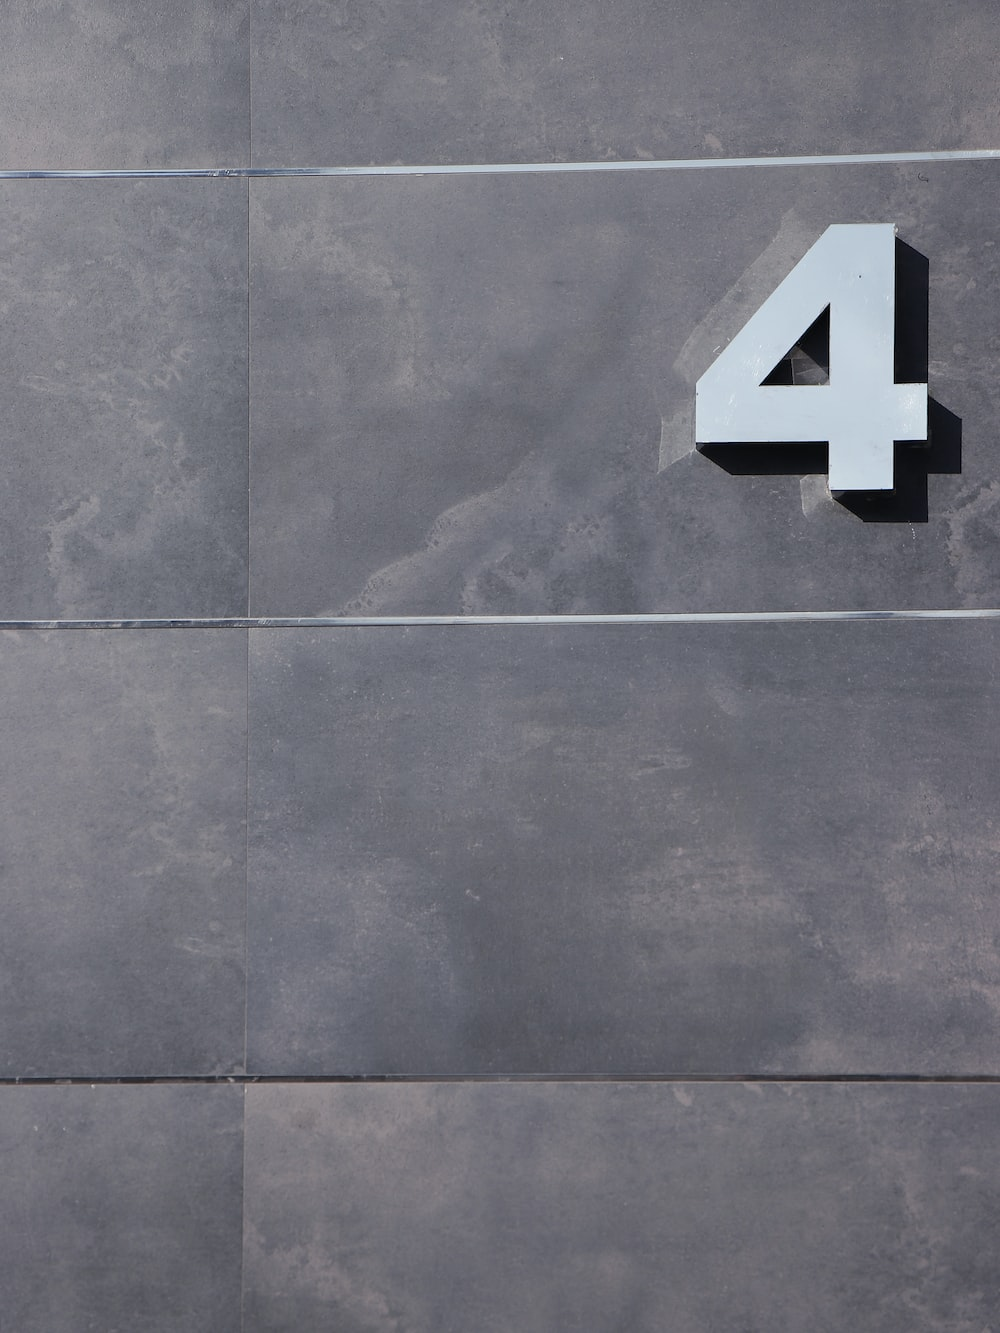 Number Cutout Wall Decor Photo Free Text Image On Unsplash